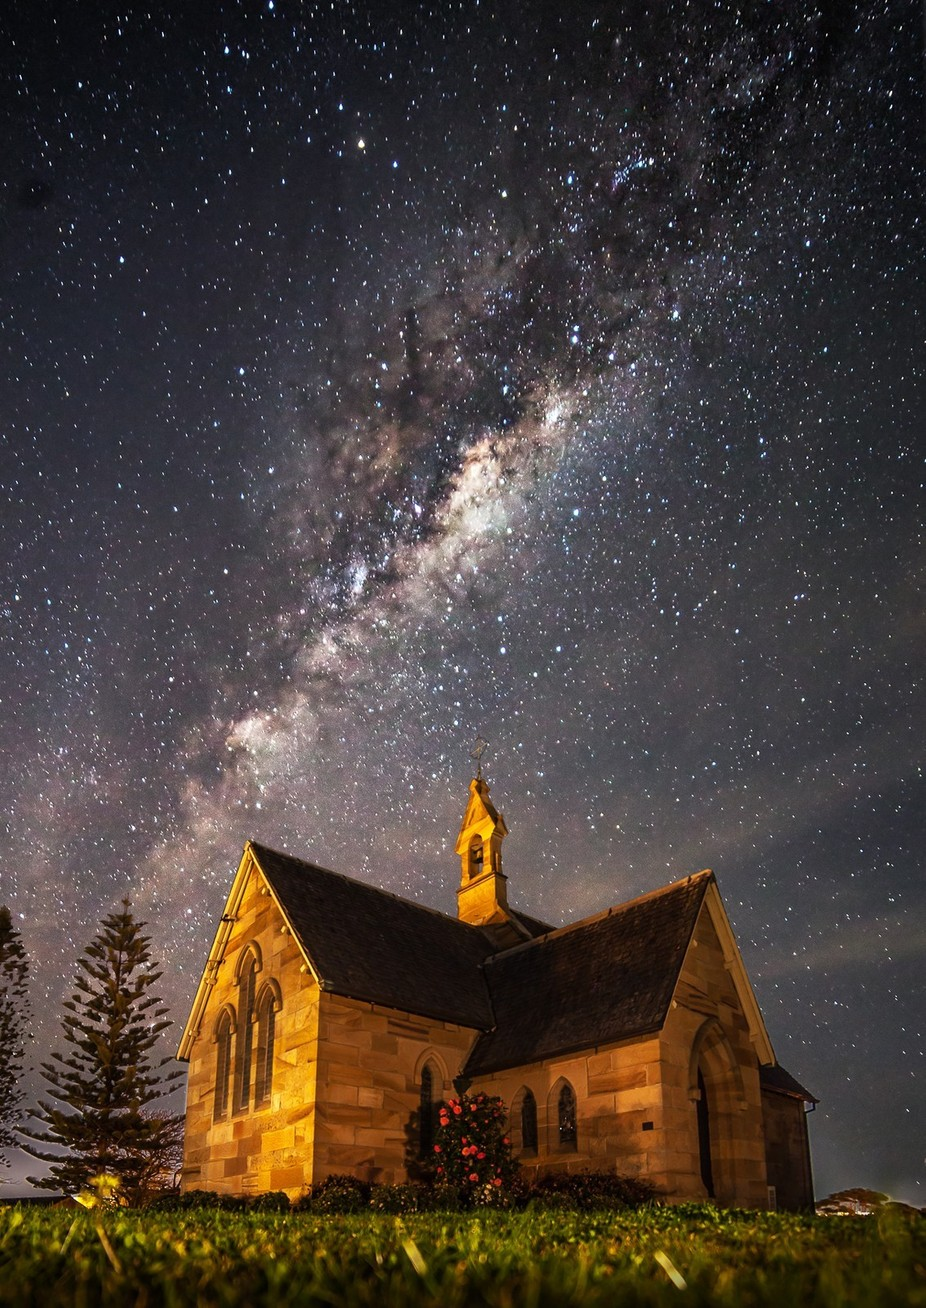 Message from God by TonyLaw - Faith Photo Contest with Scott Jarvie